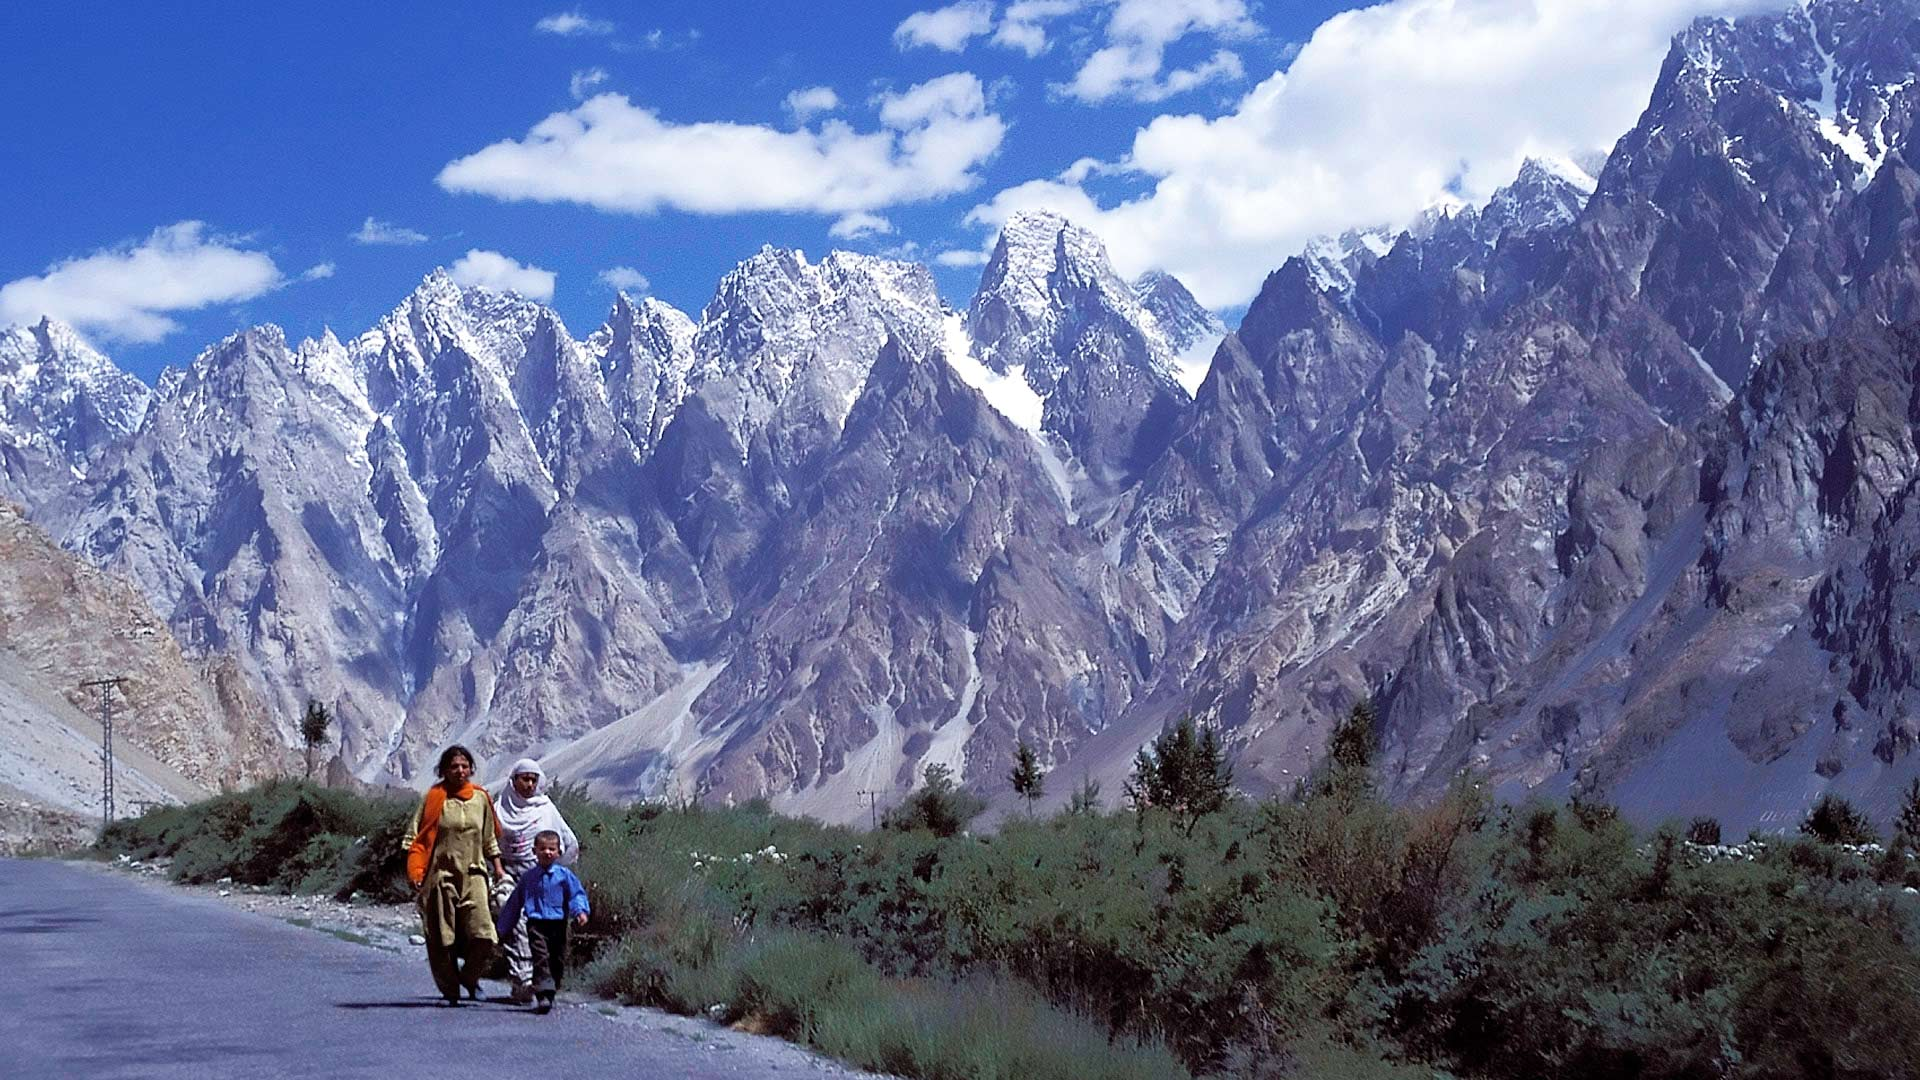 Women walking on the Karakoram Highway with the Little Karakoram Range in the background, Northern Areas, Pakistan